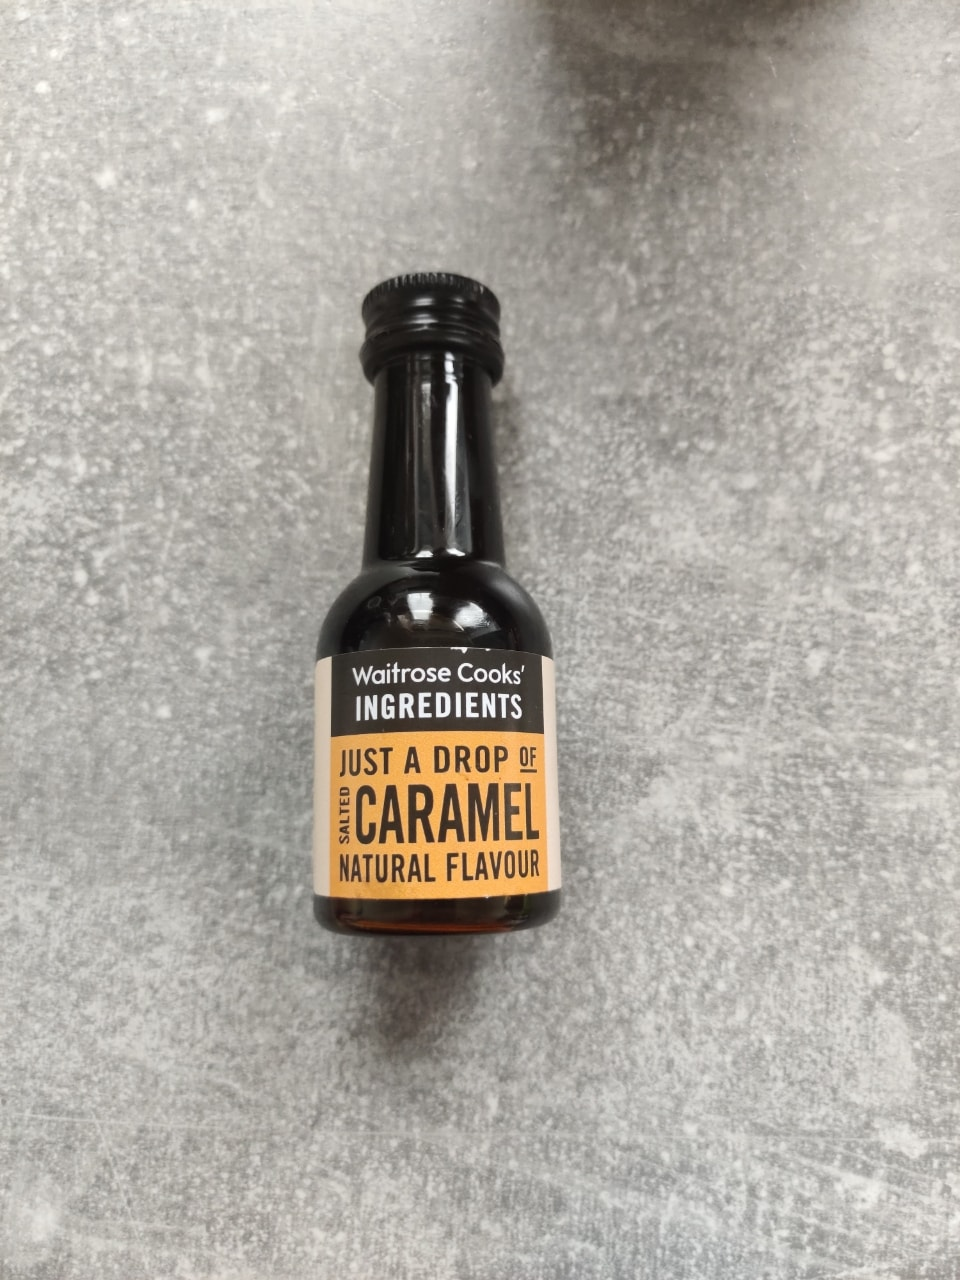 Caramel flavouring